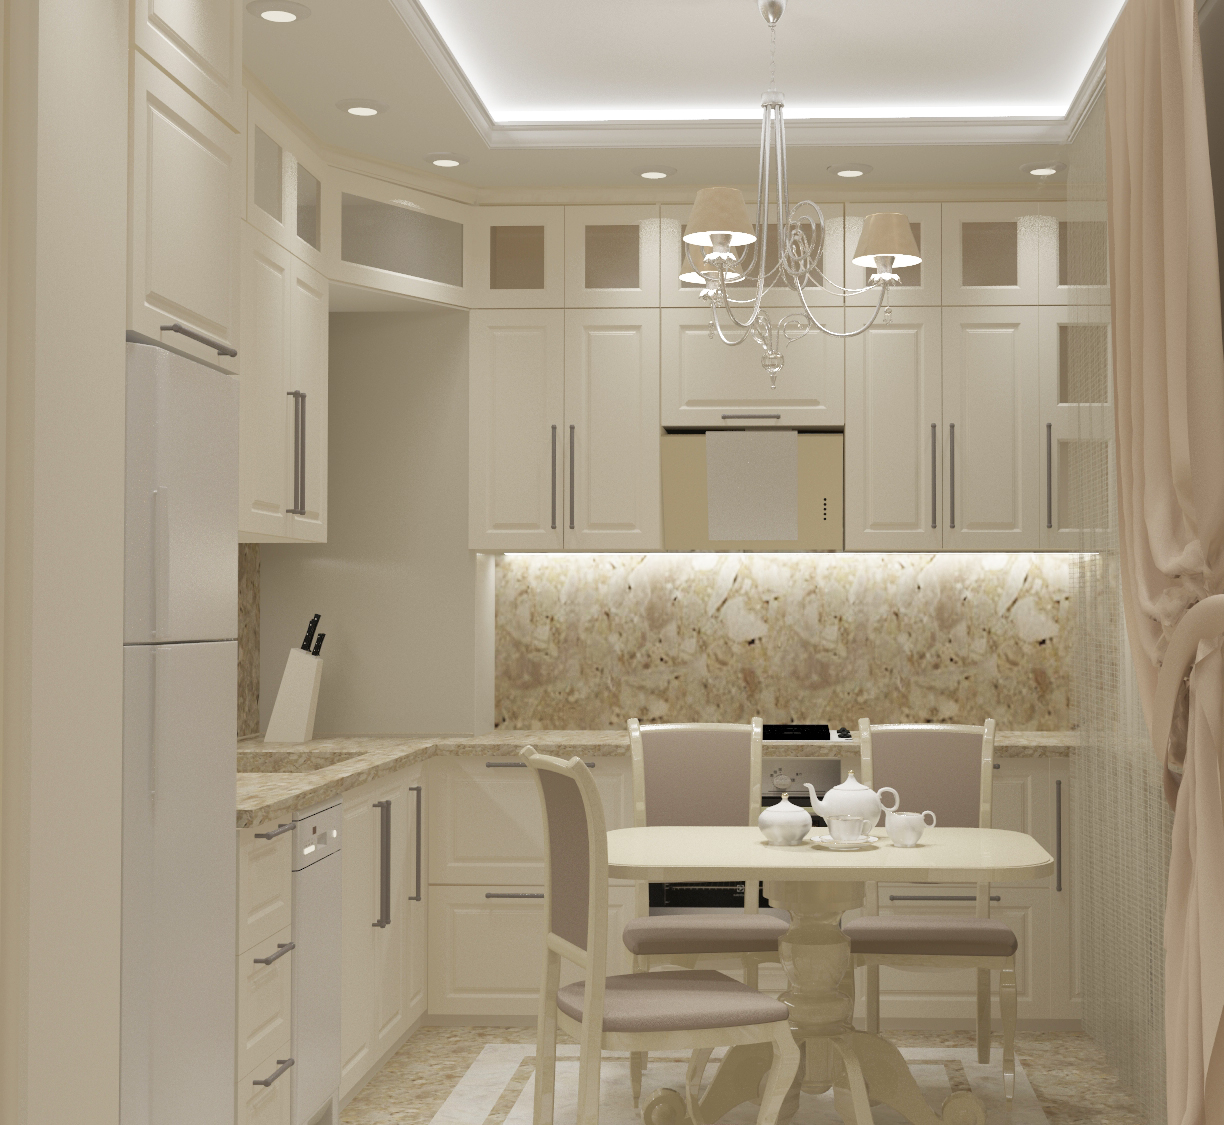 The kitchen in classical style in 3d max vray 3.0 image